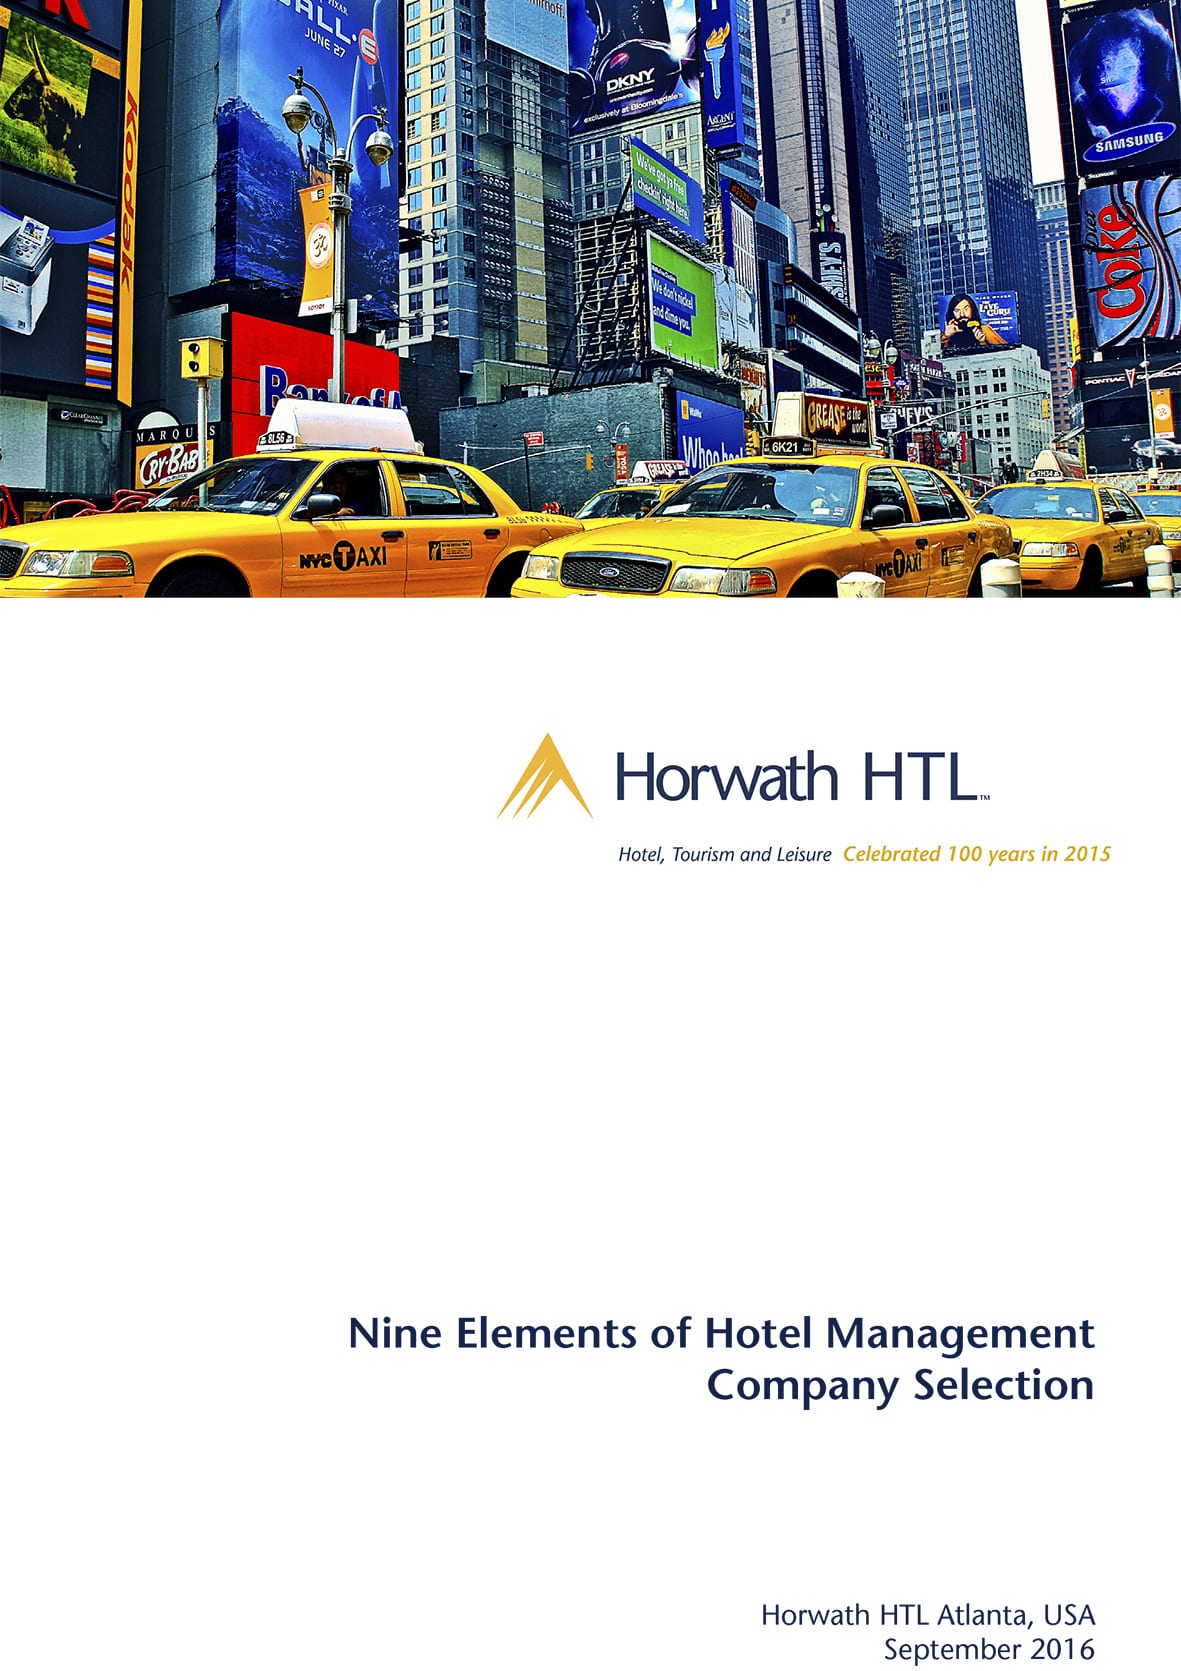 Nine Elements of Hotel Management Company Selection 1